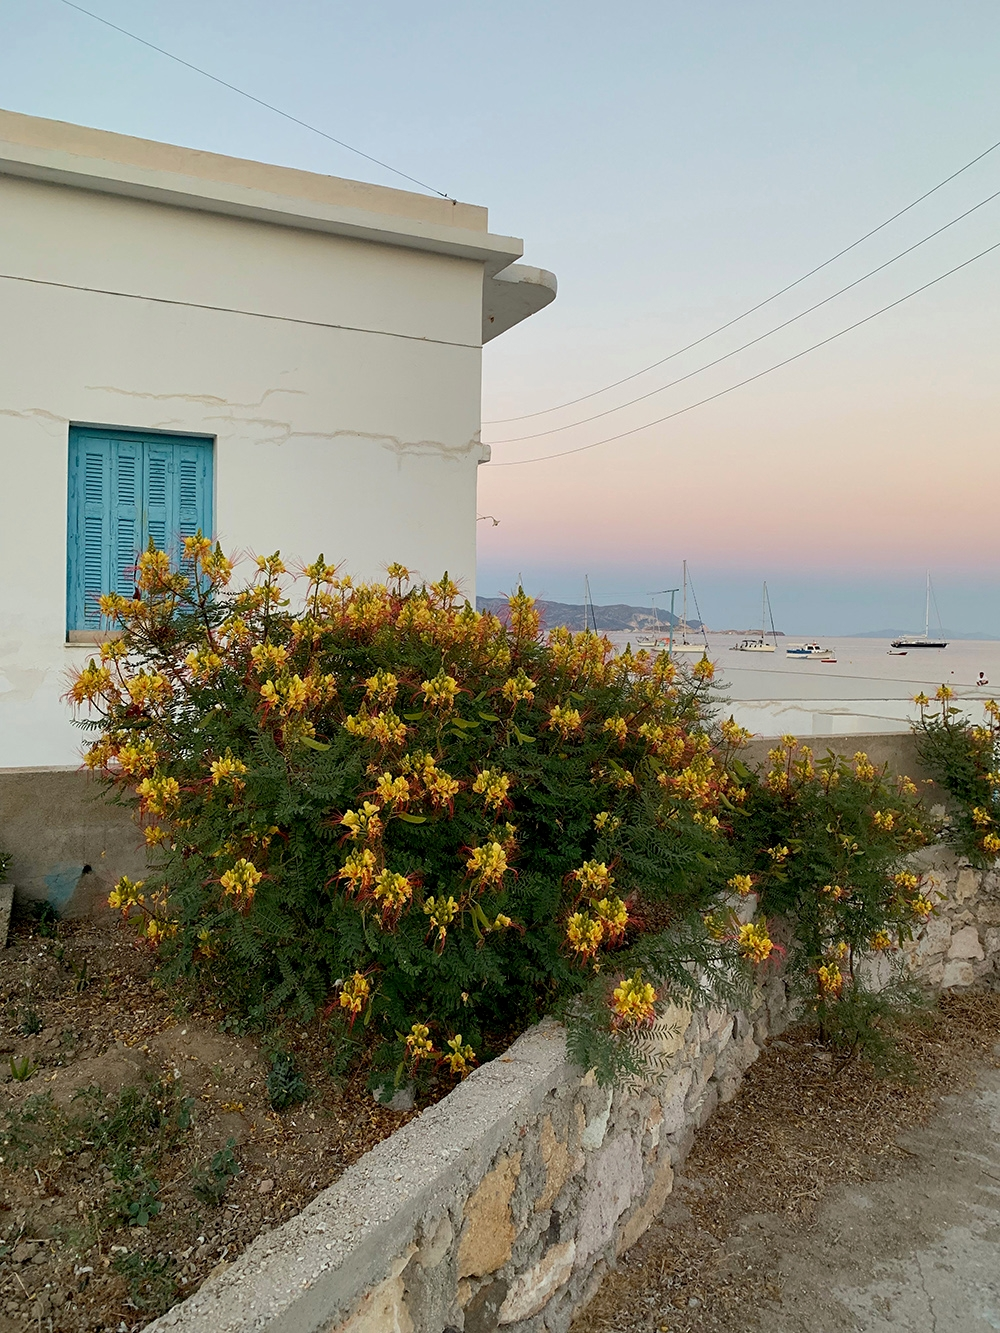 Native flora lines the foreground, while the sun sets over the boats and houses around the island.